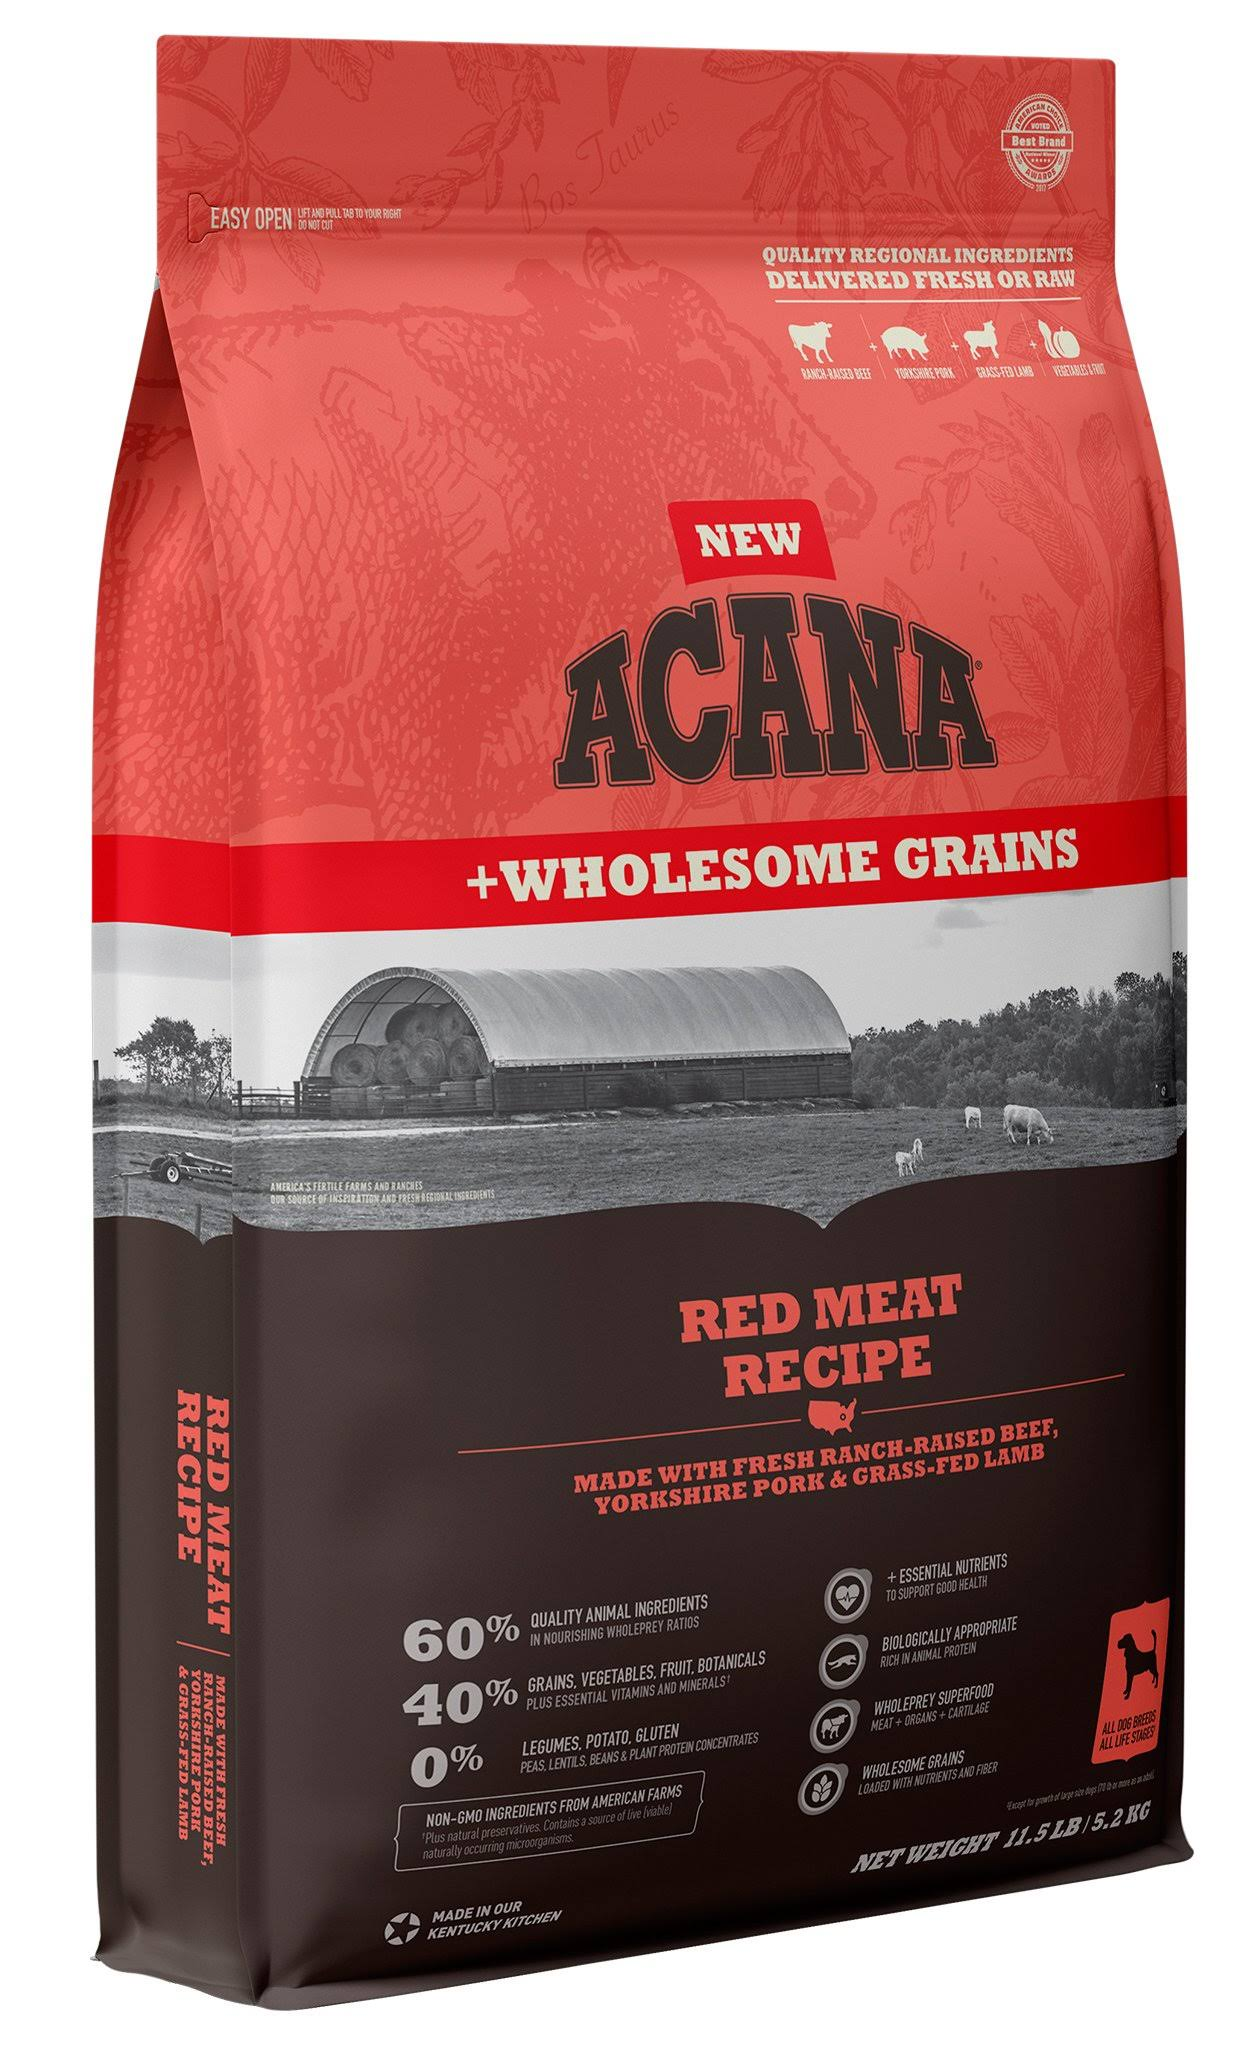 ACANA Wholesome Grains Red Meat Dry Dog Food, 22.5 lbs.